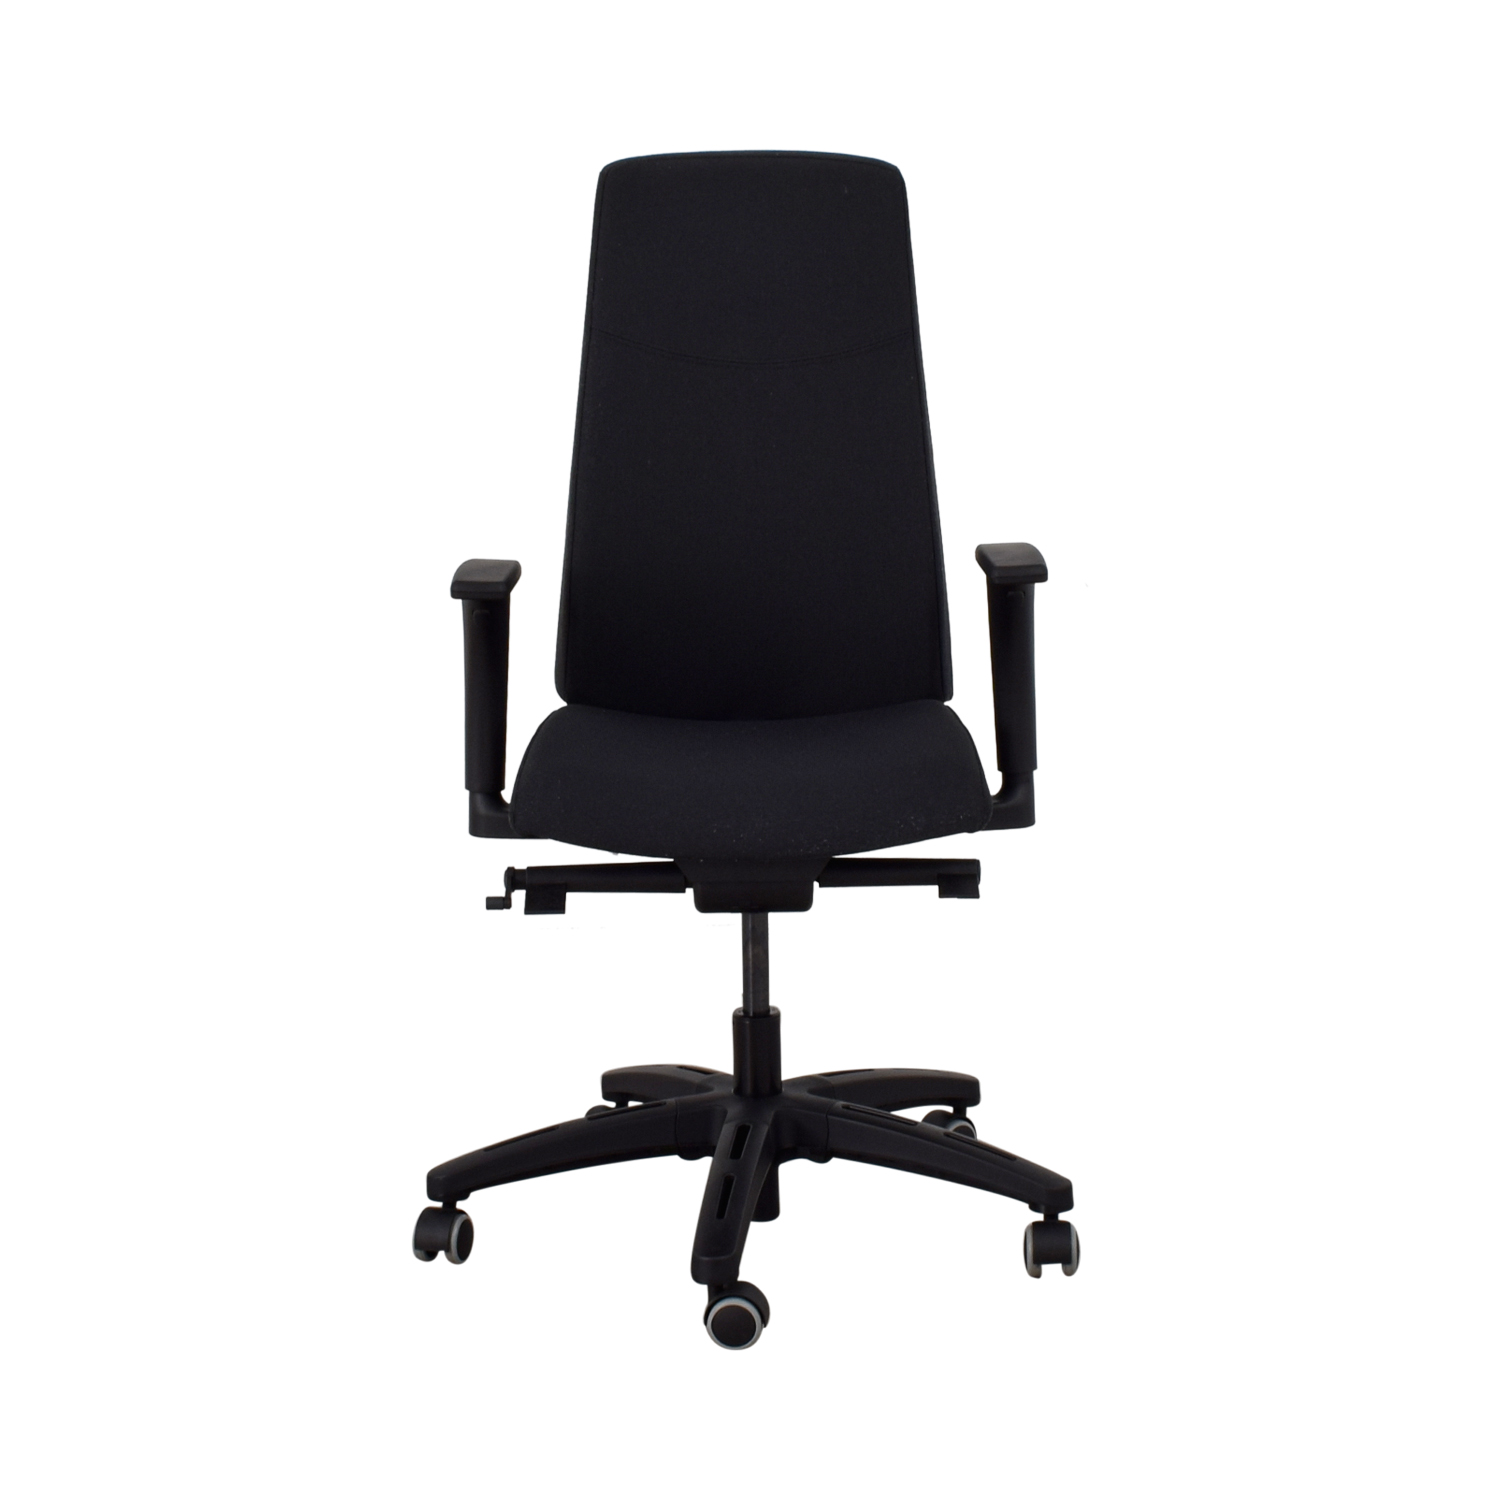 83 Off Ikea Ikea Volmar Grey Office Chair With Arms Chairs